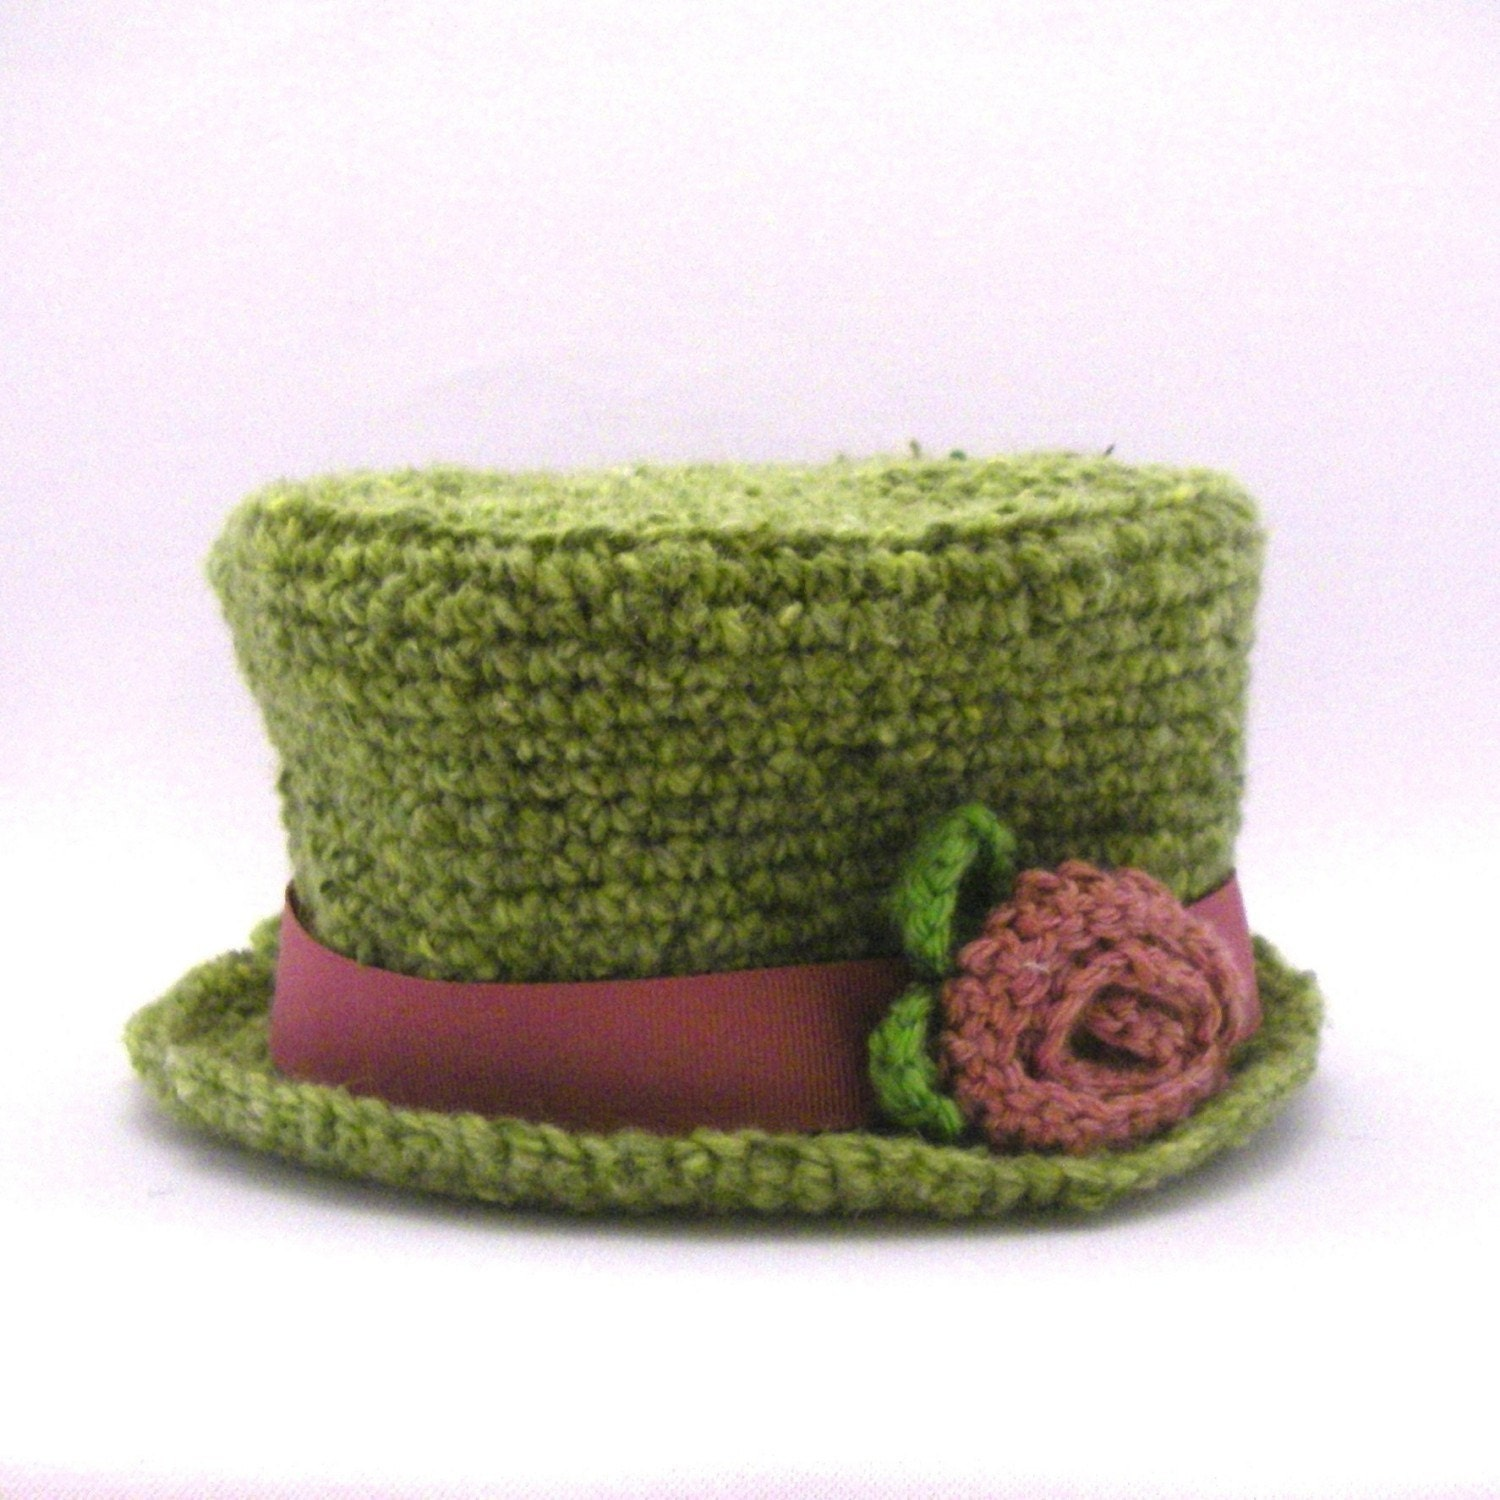 Crochet Pattern Top Hat : Gallery For > Crochet Top Hat Pattern